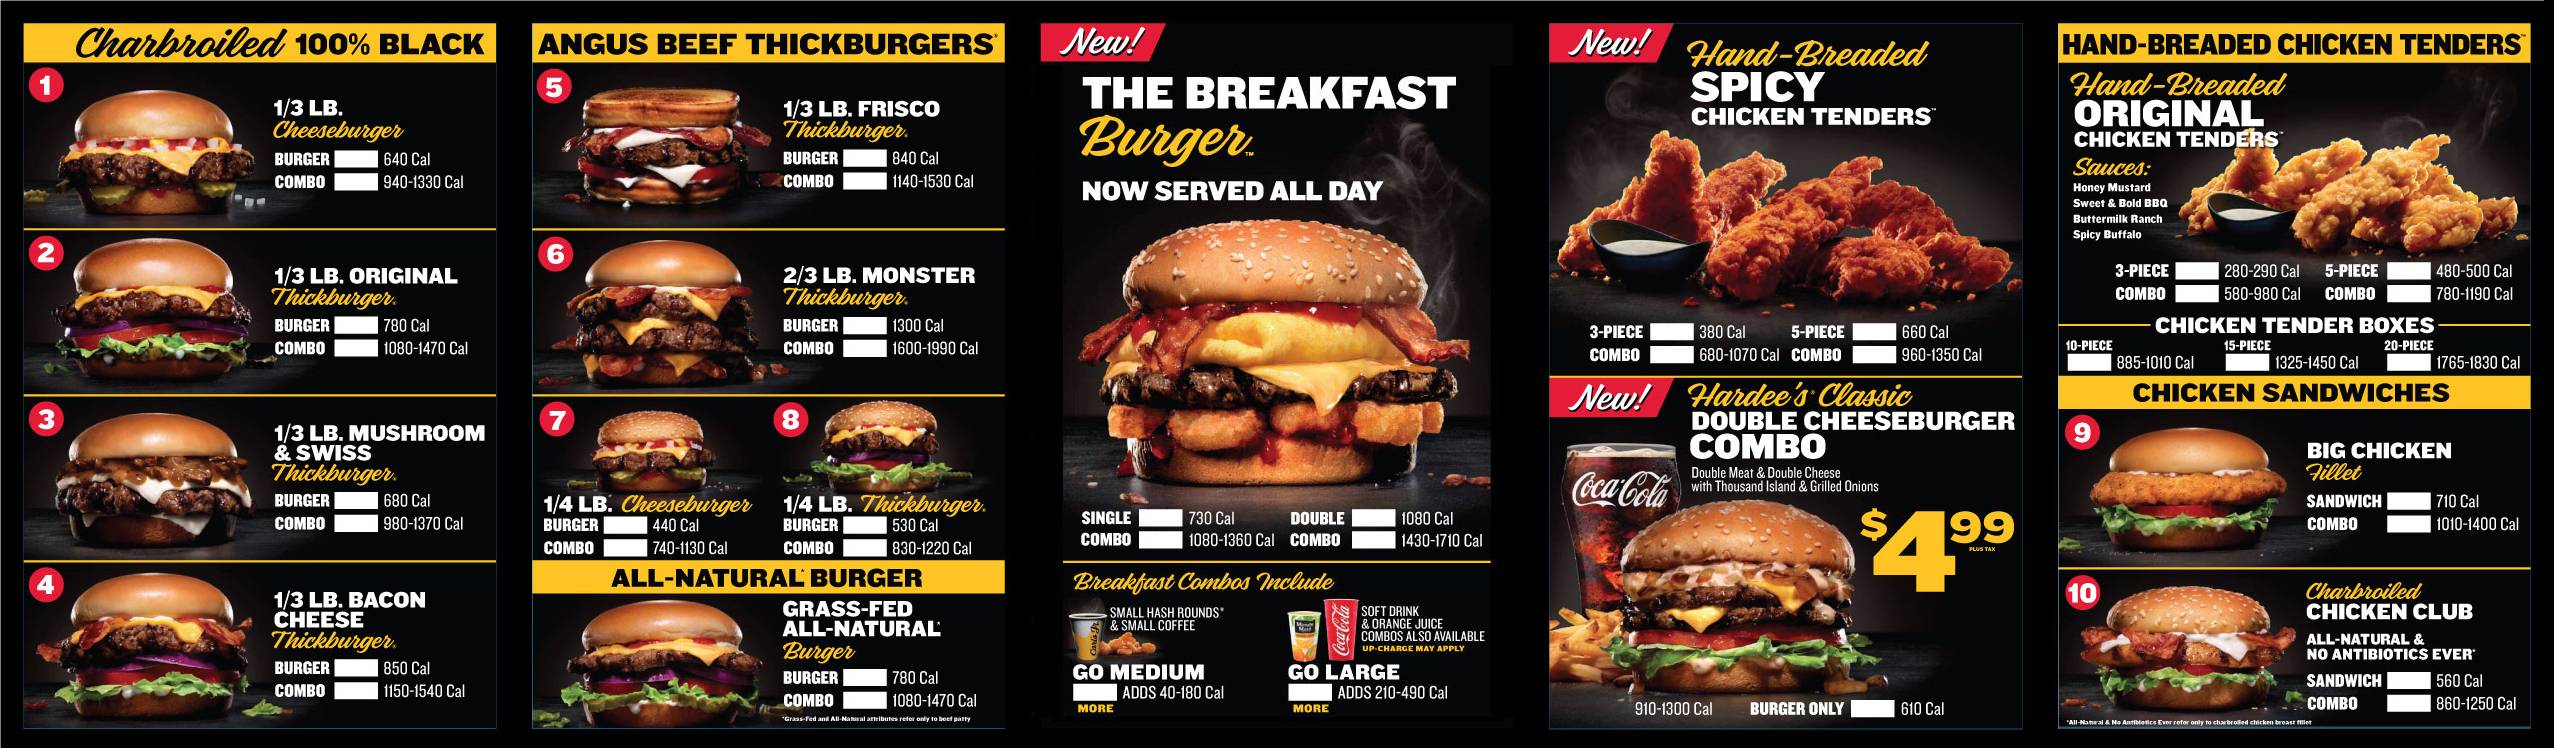 Menu Board, CKE Restaurants (Graphic: Business Wire)